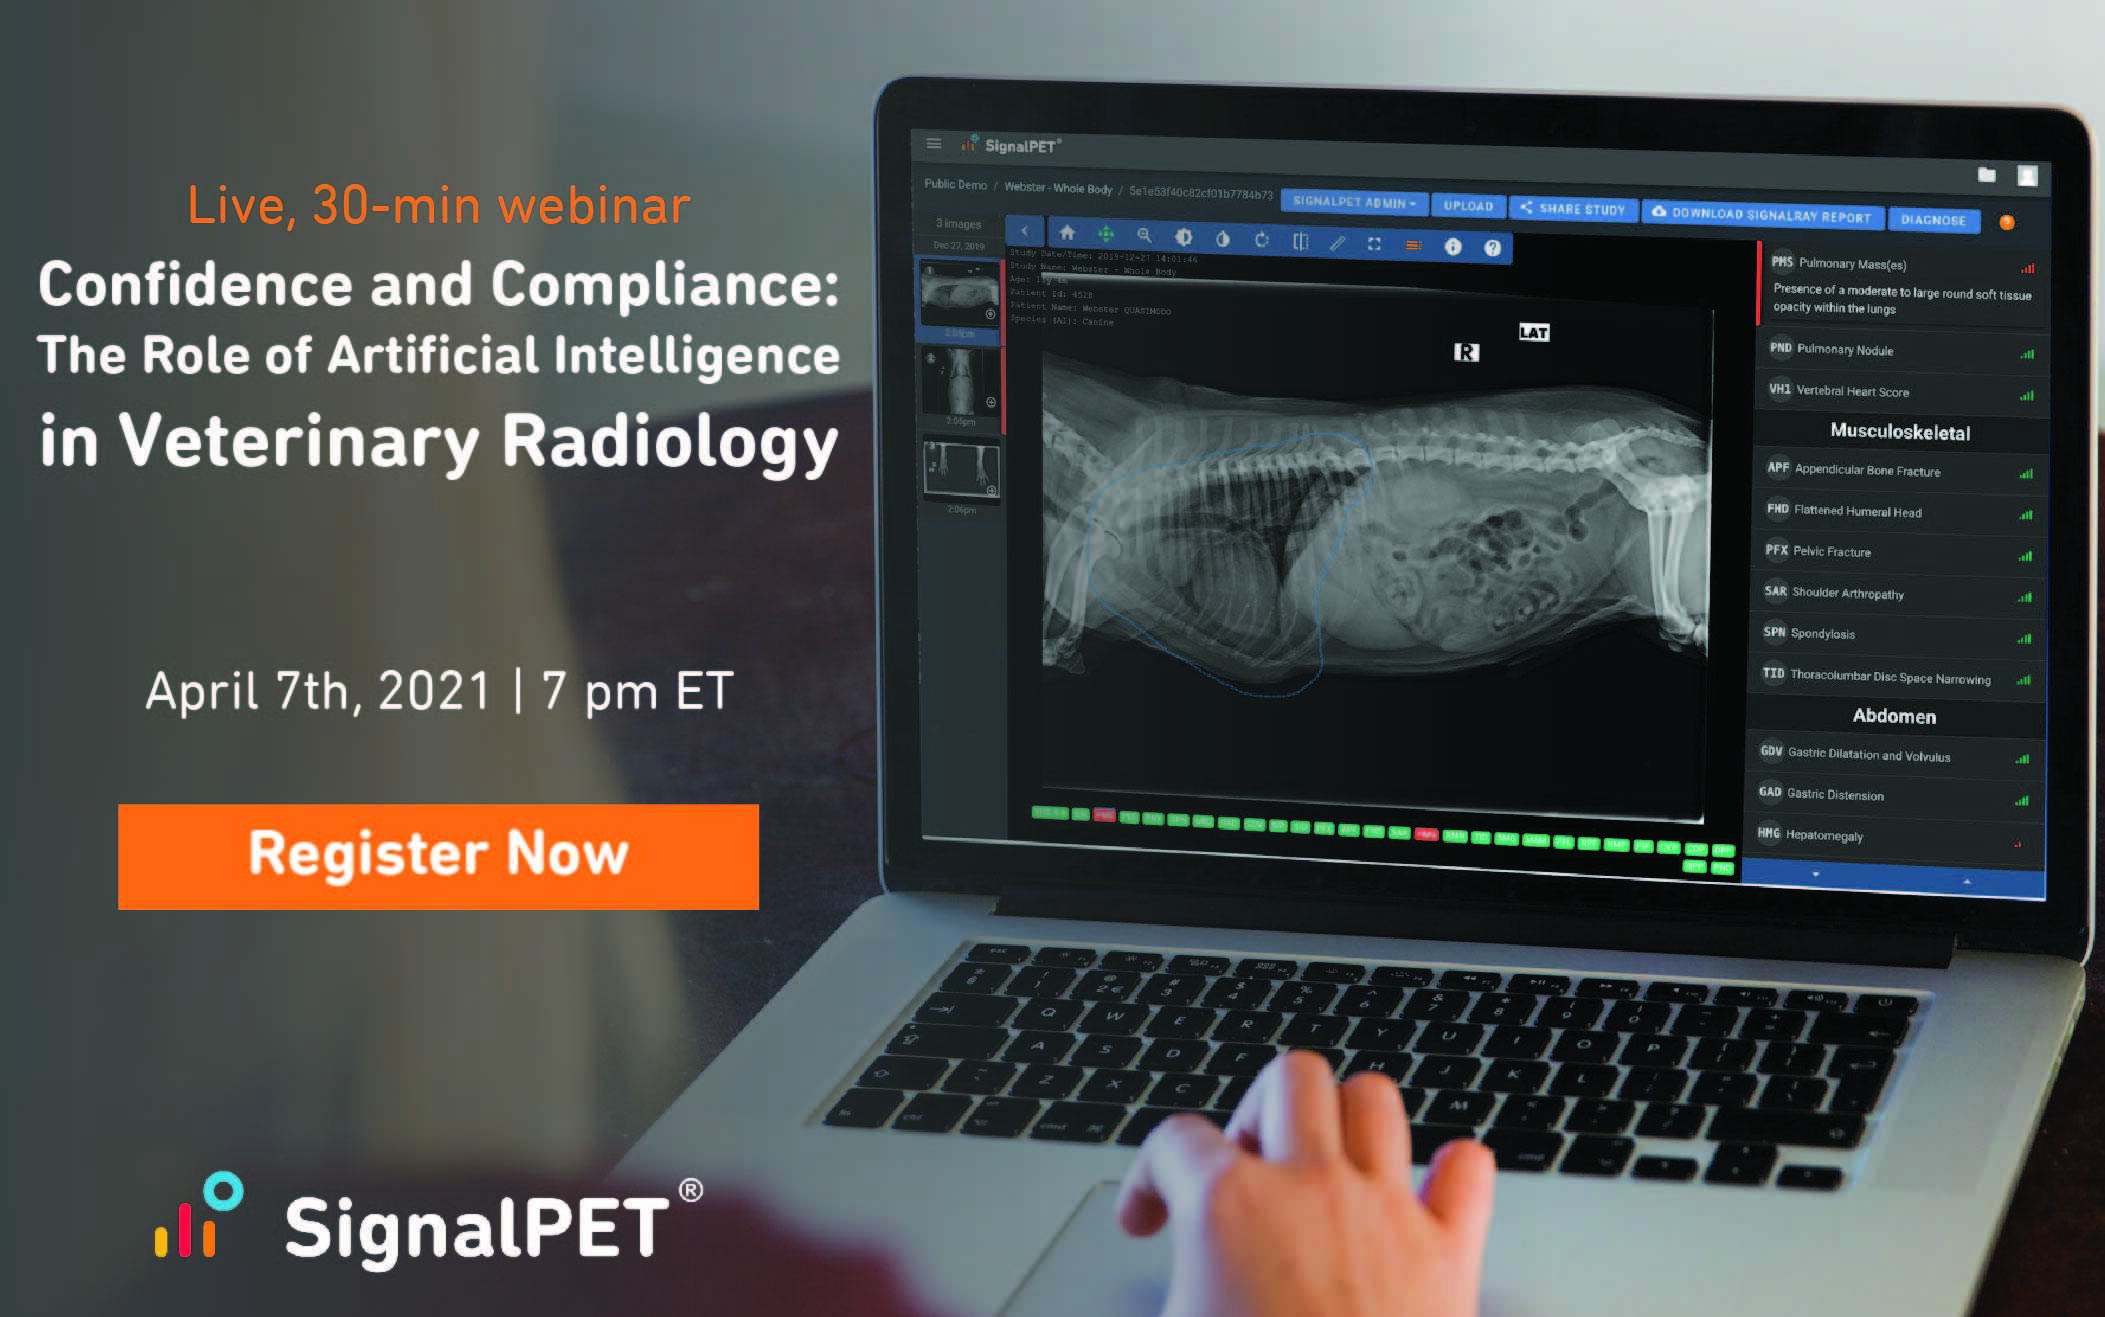 Artificial Intelligence in Veterinary Radiology Webinar